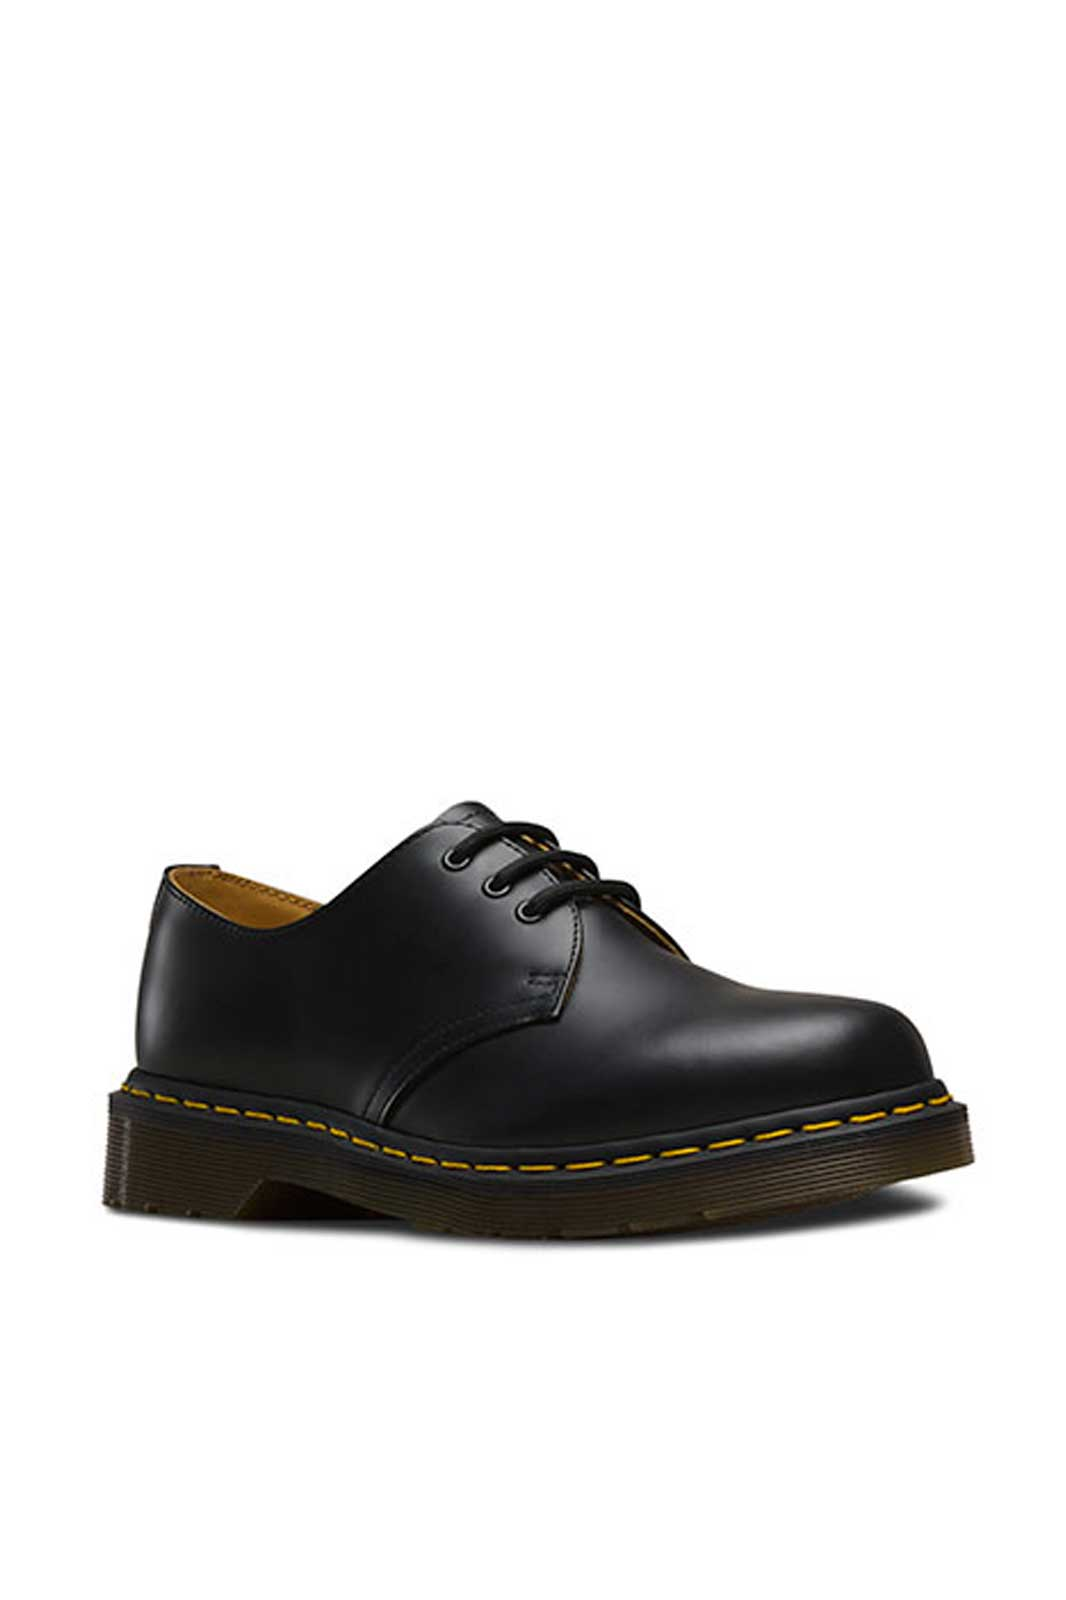 dr martens 1461z-3-eye-shoes